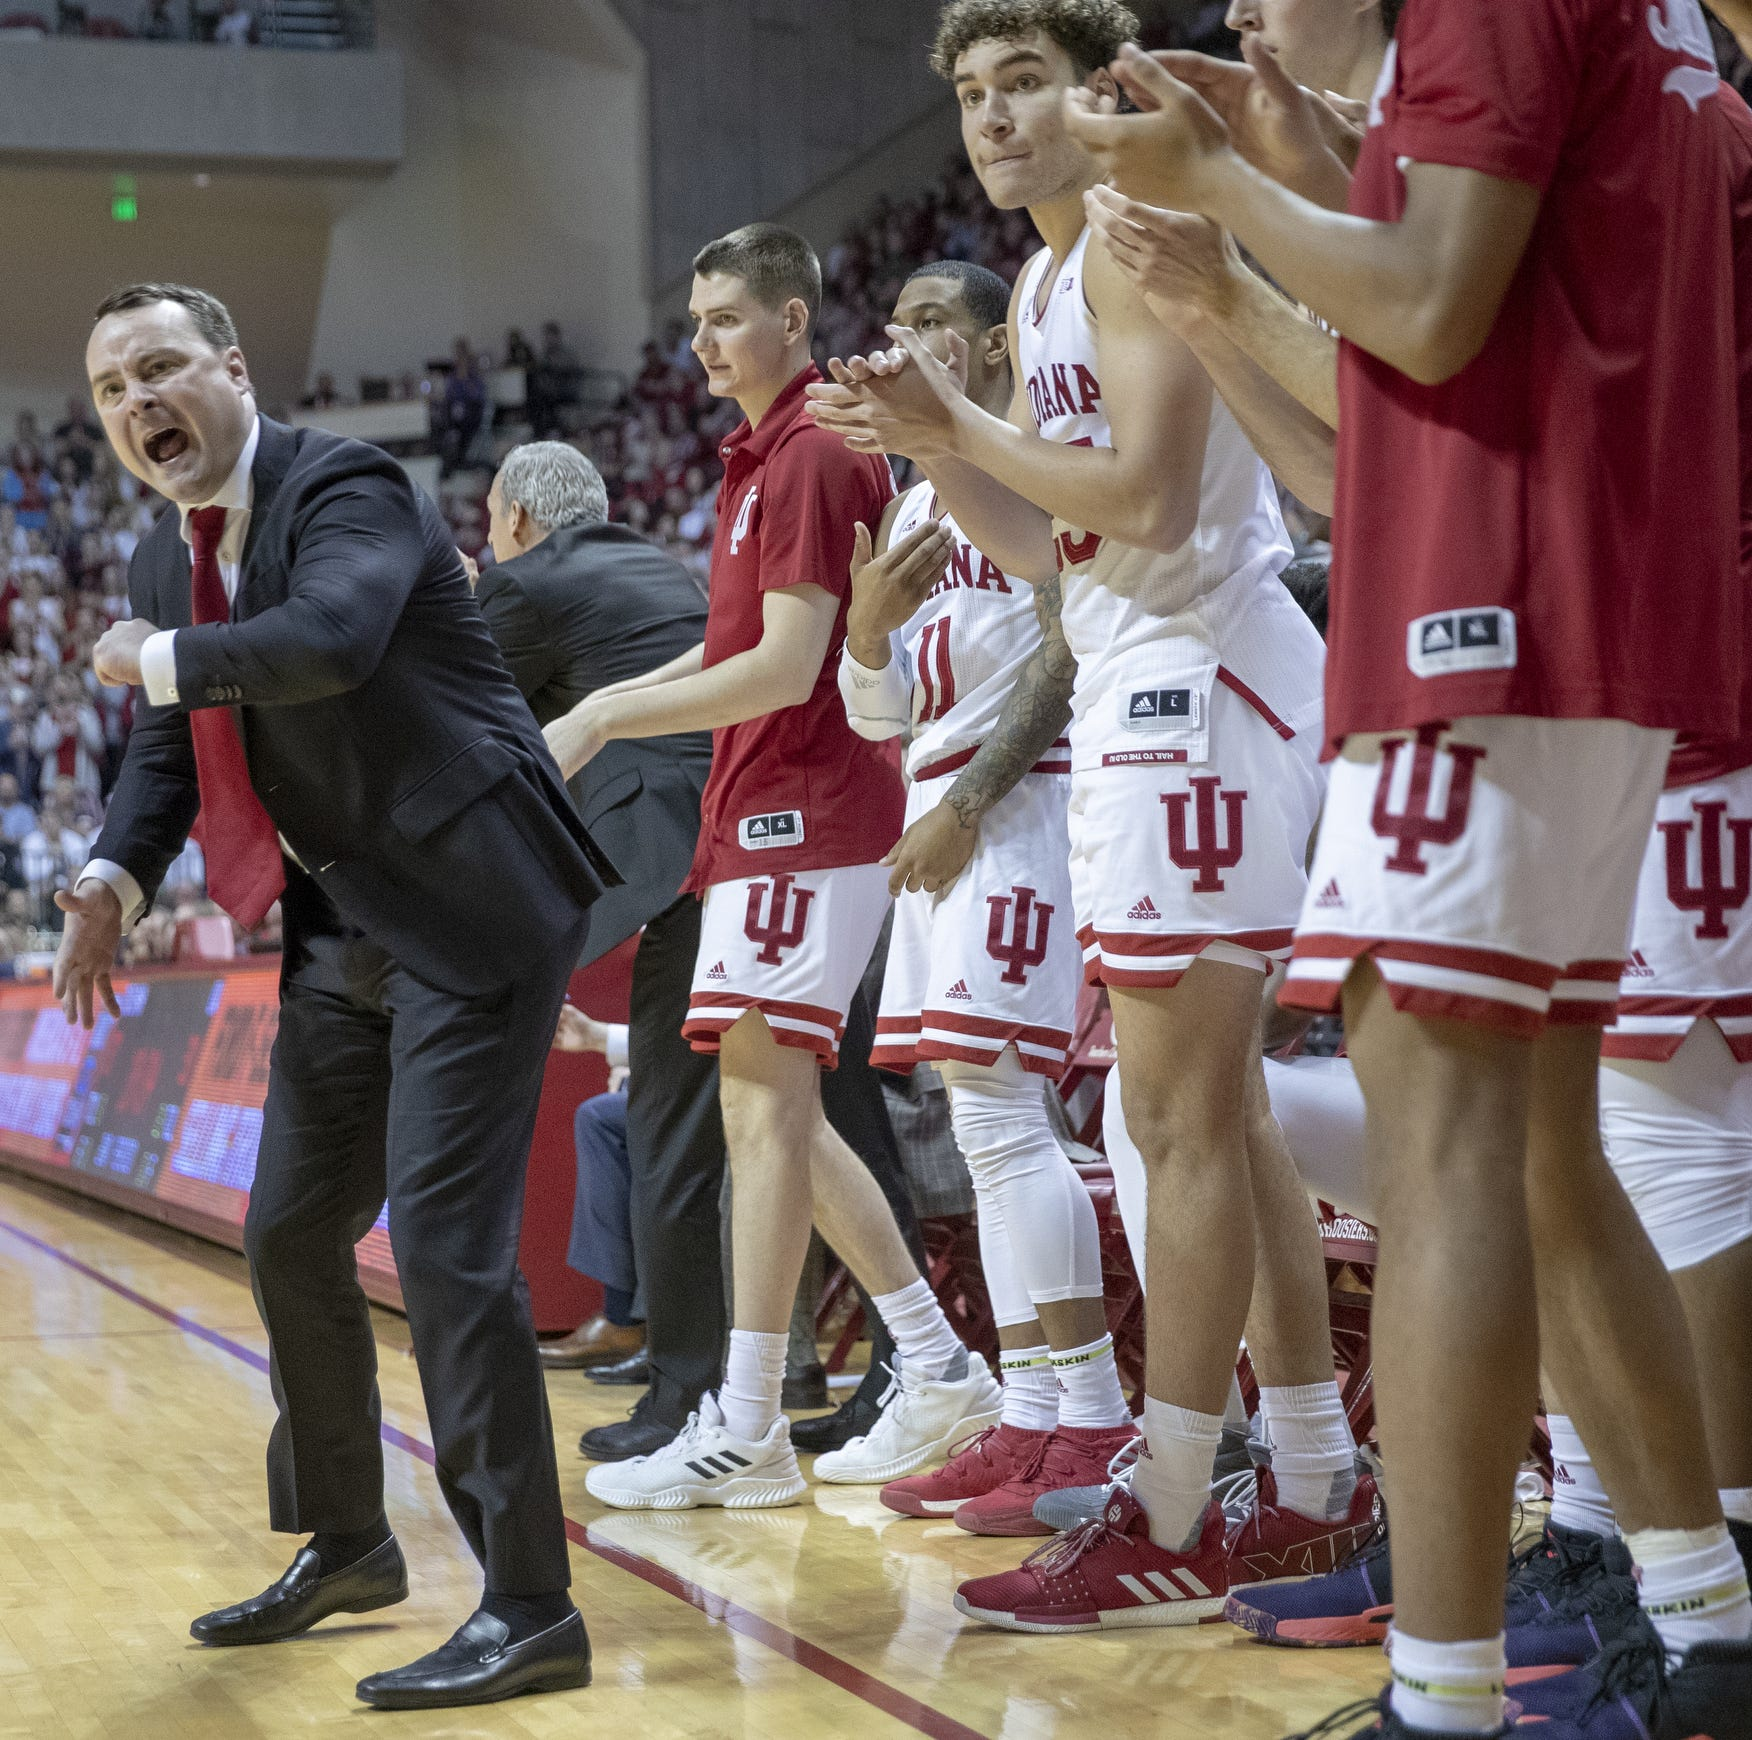 IU's case for NCAA tournament at-large bid is one of the most unusual in the country